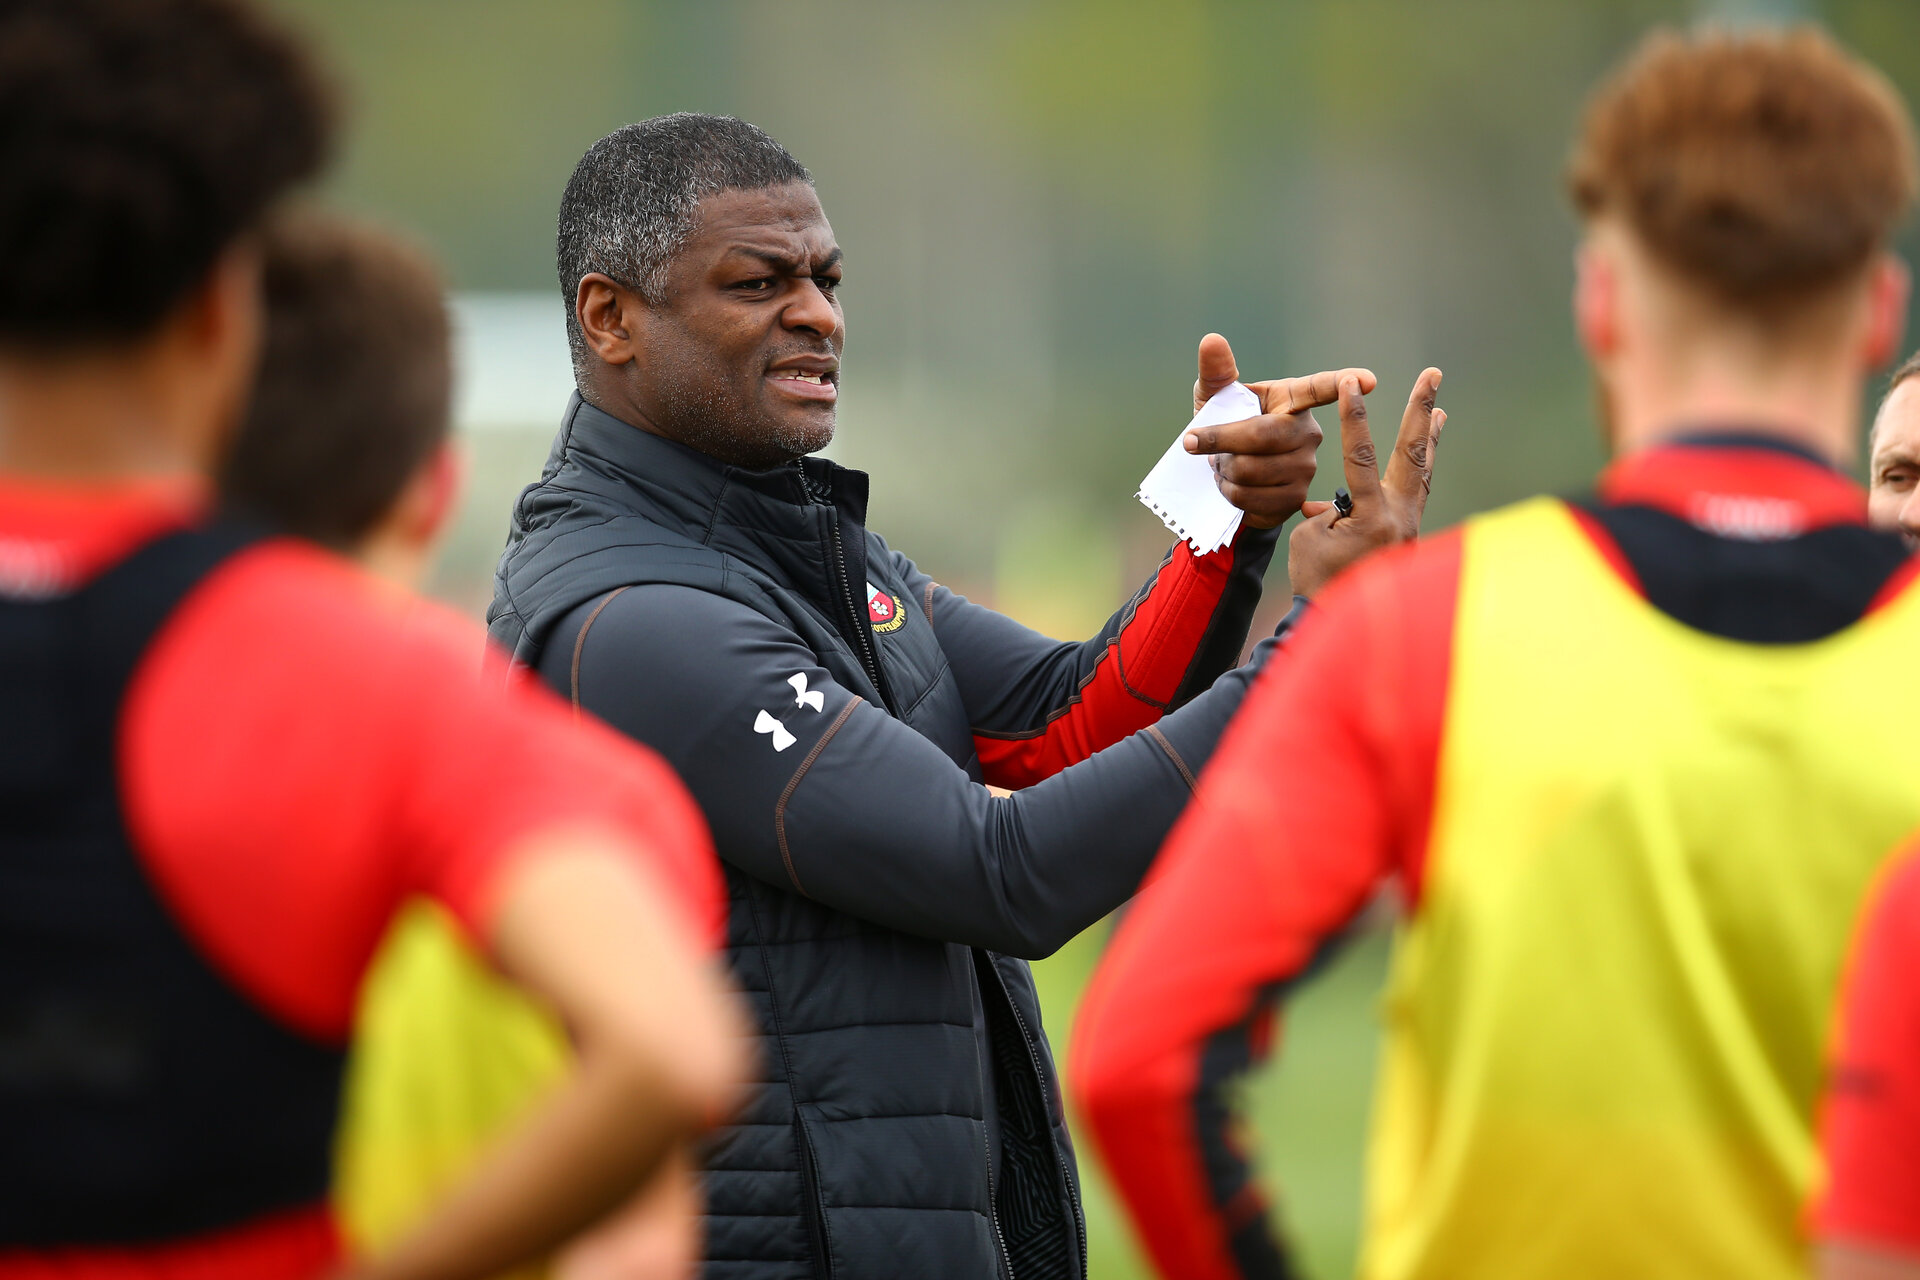 SOUTHAMPTON, ENGLAND - APRIL 08: Radhi Jaidi speaks with the players during an U23s Southampton FC training session at Staplewood Complex on April 08, 2019 in Southampton, England. (Photo by James Bridle - Southampton FC/Southampton FC via Getty Images)